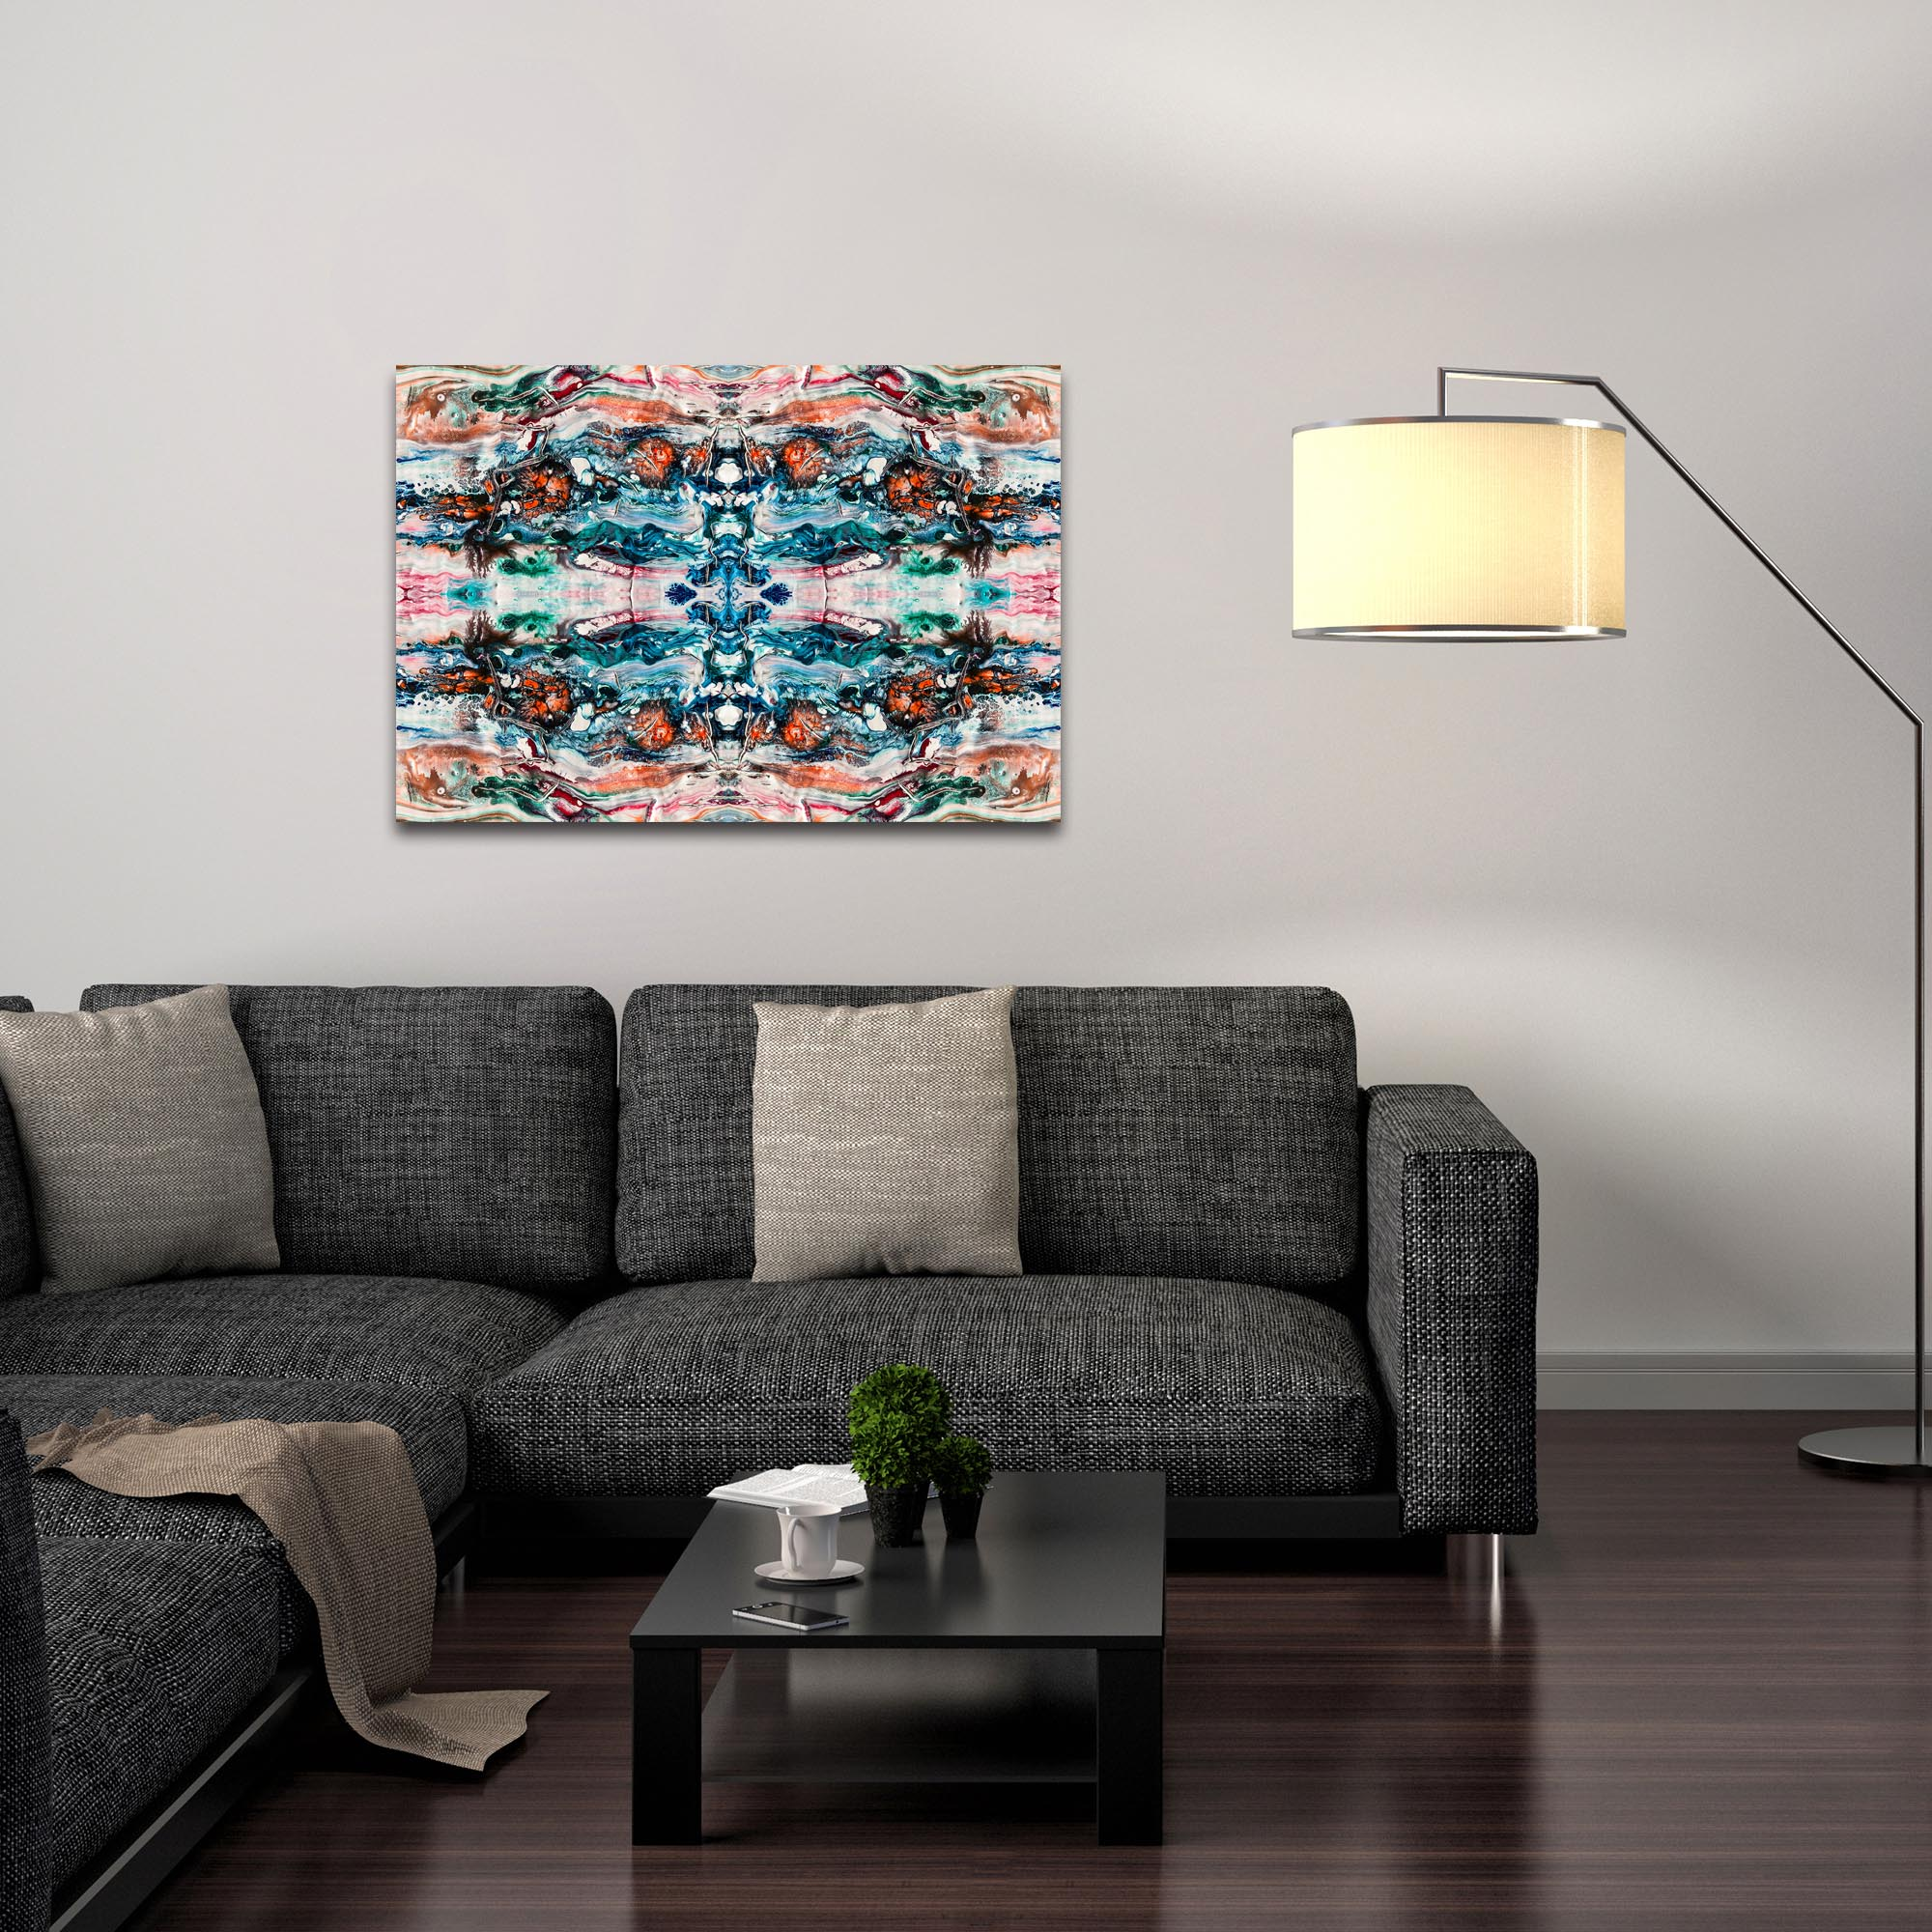 Abstract Wall Art 'Sunset On Her Breath 7 Quad' - Colorful Urban Decor on Metal or Plexiglass - Lifestyle View